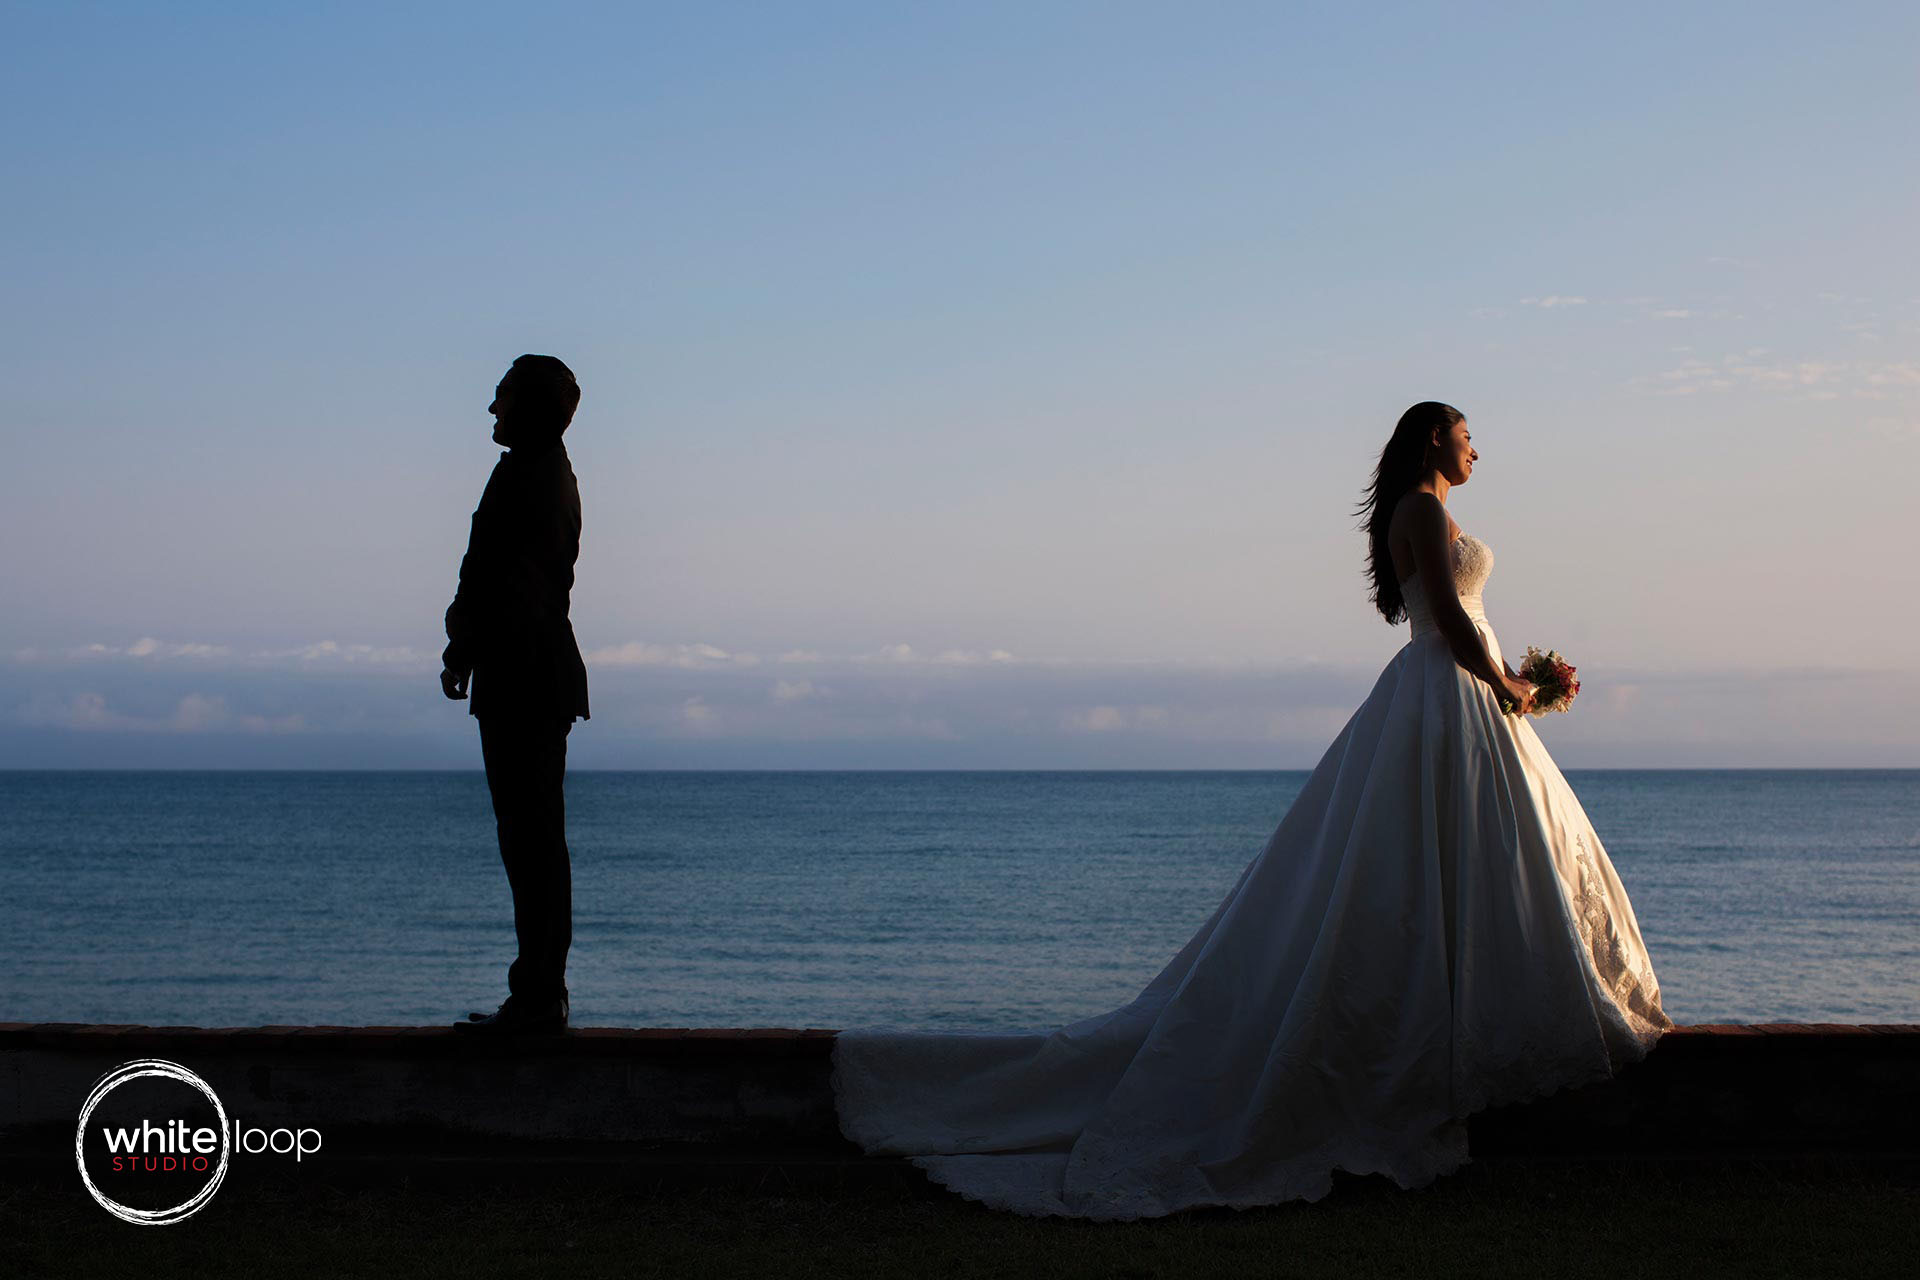 bride and groom are standing, bride facing the sunset and groom on the shadow, representing the opposites.